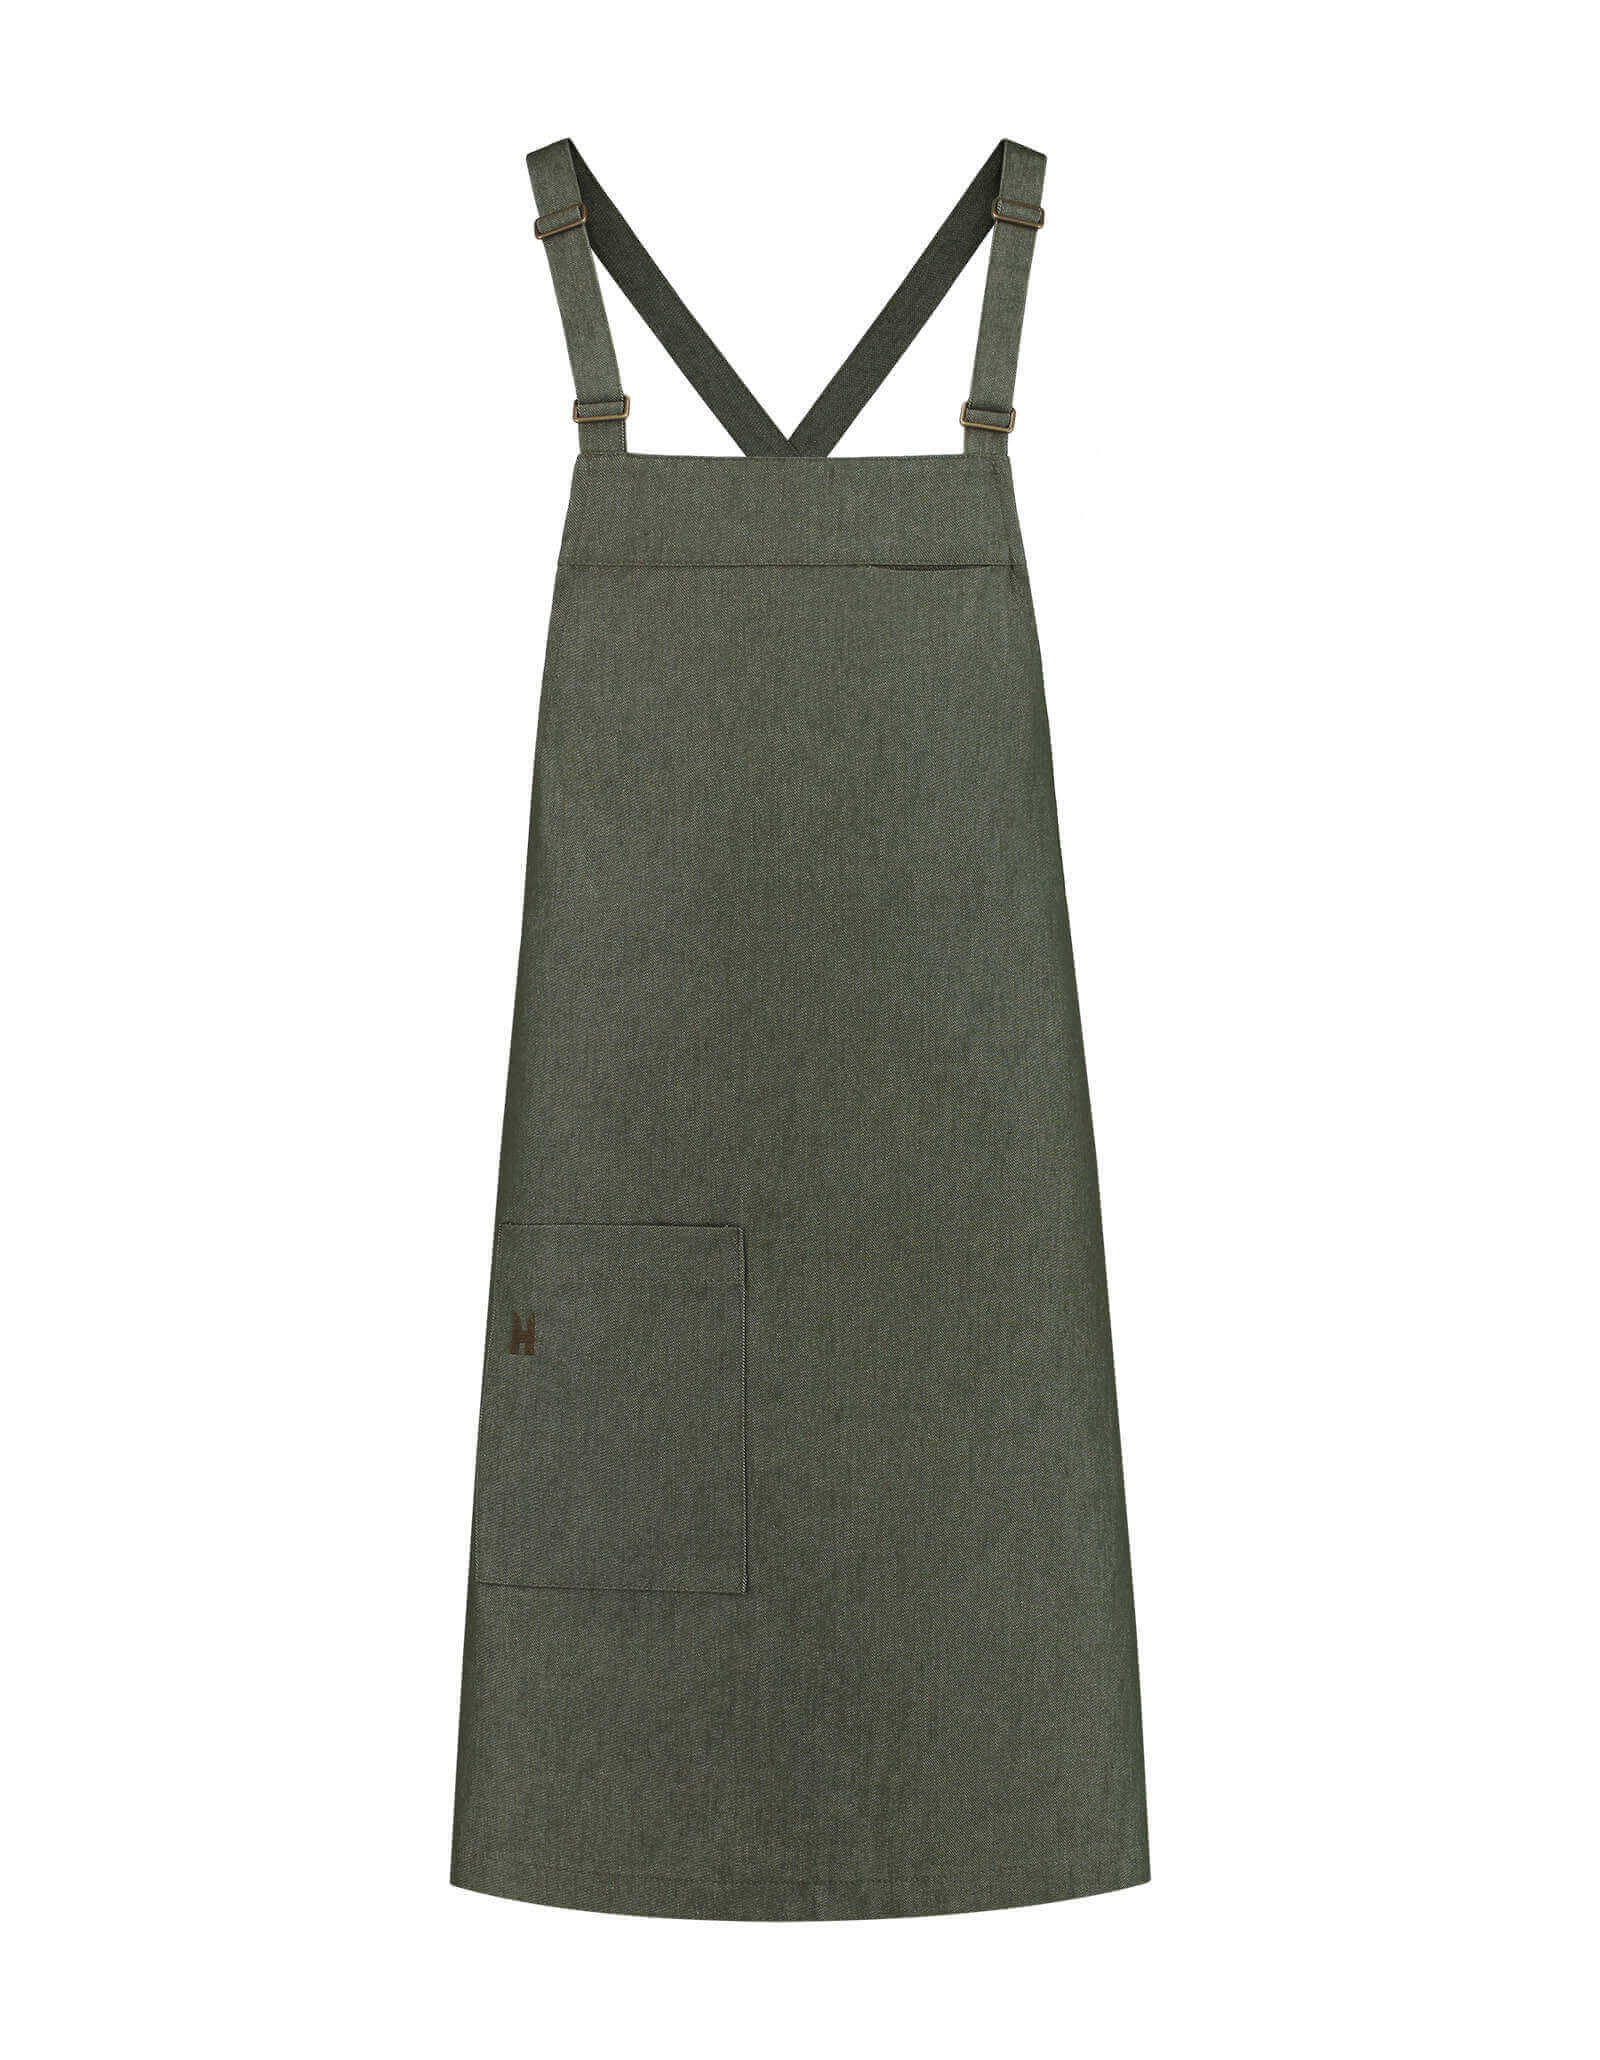 Bib Apron Eden Heavy Green Denim